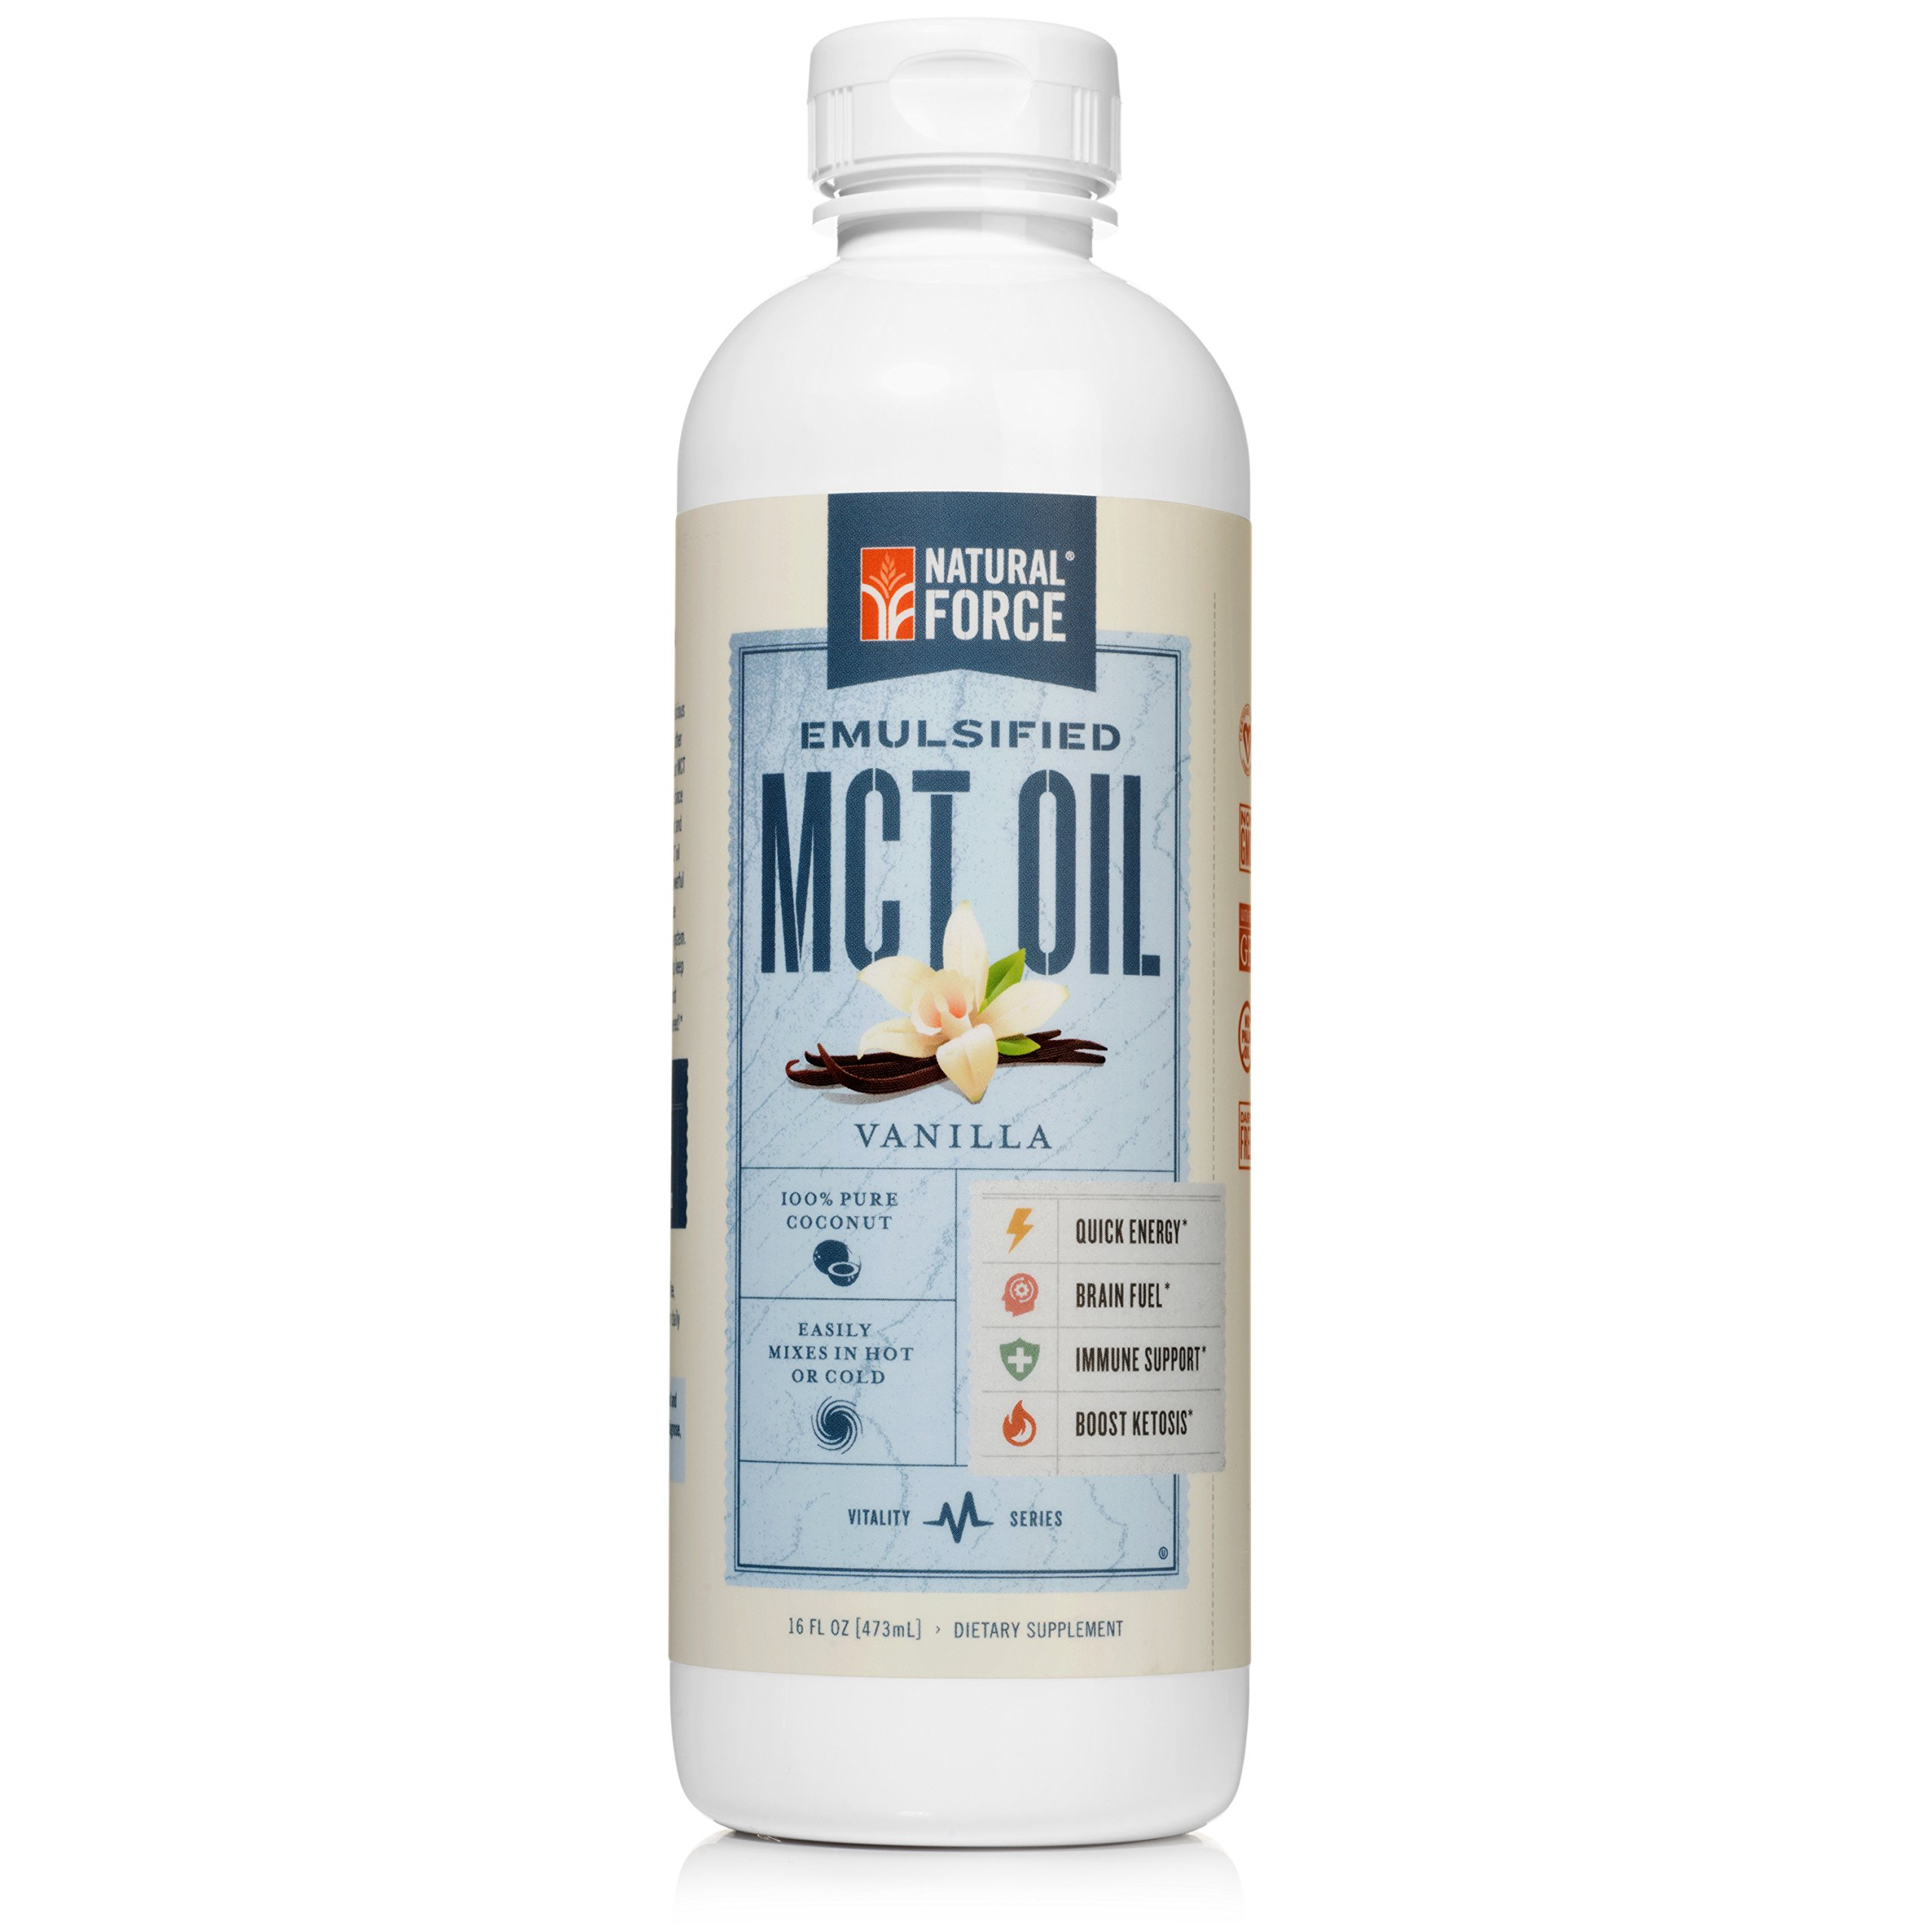 Emulsified MCT Oil Creamer, Vanilla *Best Keto MCT Oil for Mixing in Drinks* Unsweetened – No Palm Oil, Made with Organic Coconuts from The Philippines by Natural Force, 16oz